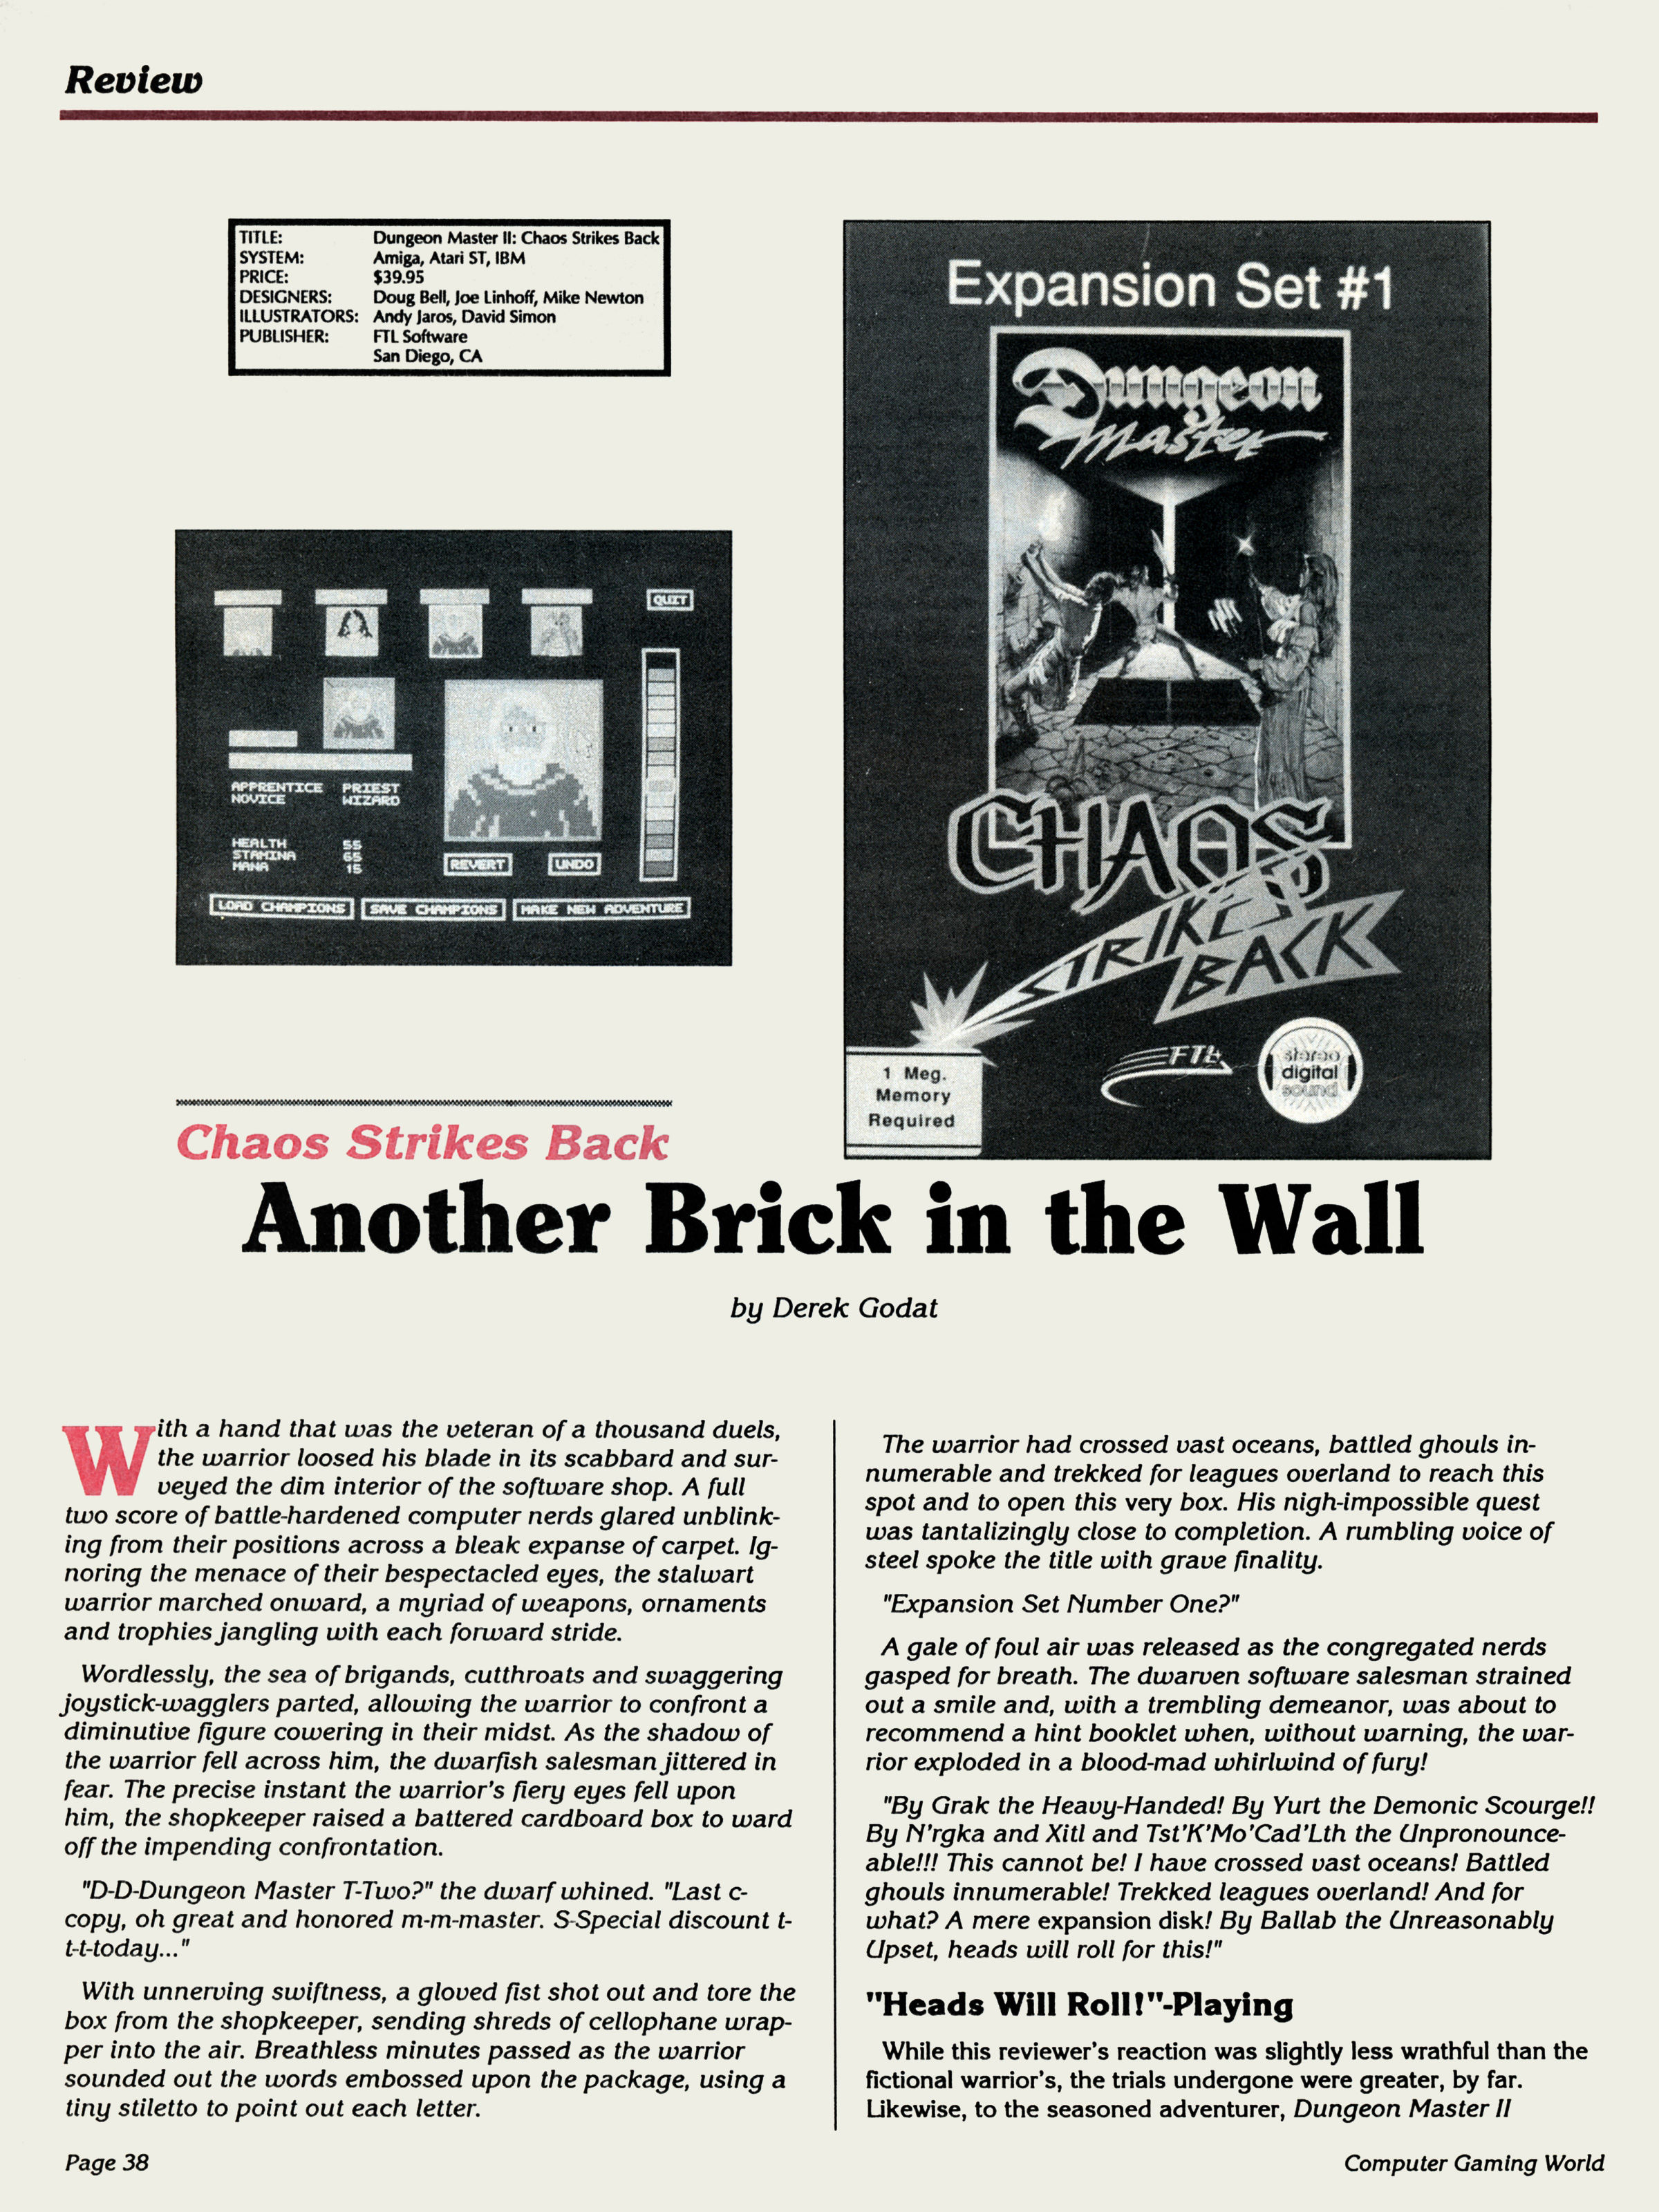 Chaos Strikes Back for Amiga Review published in American magazine 'Computer Gaming World', Issue #82, May 1991, Page 38